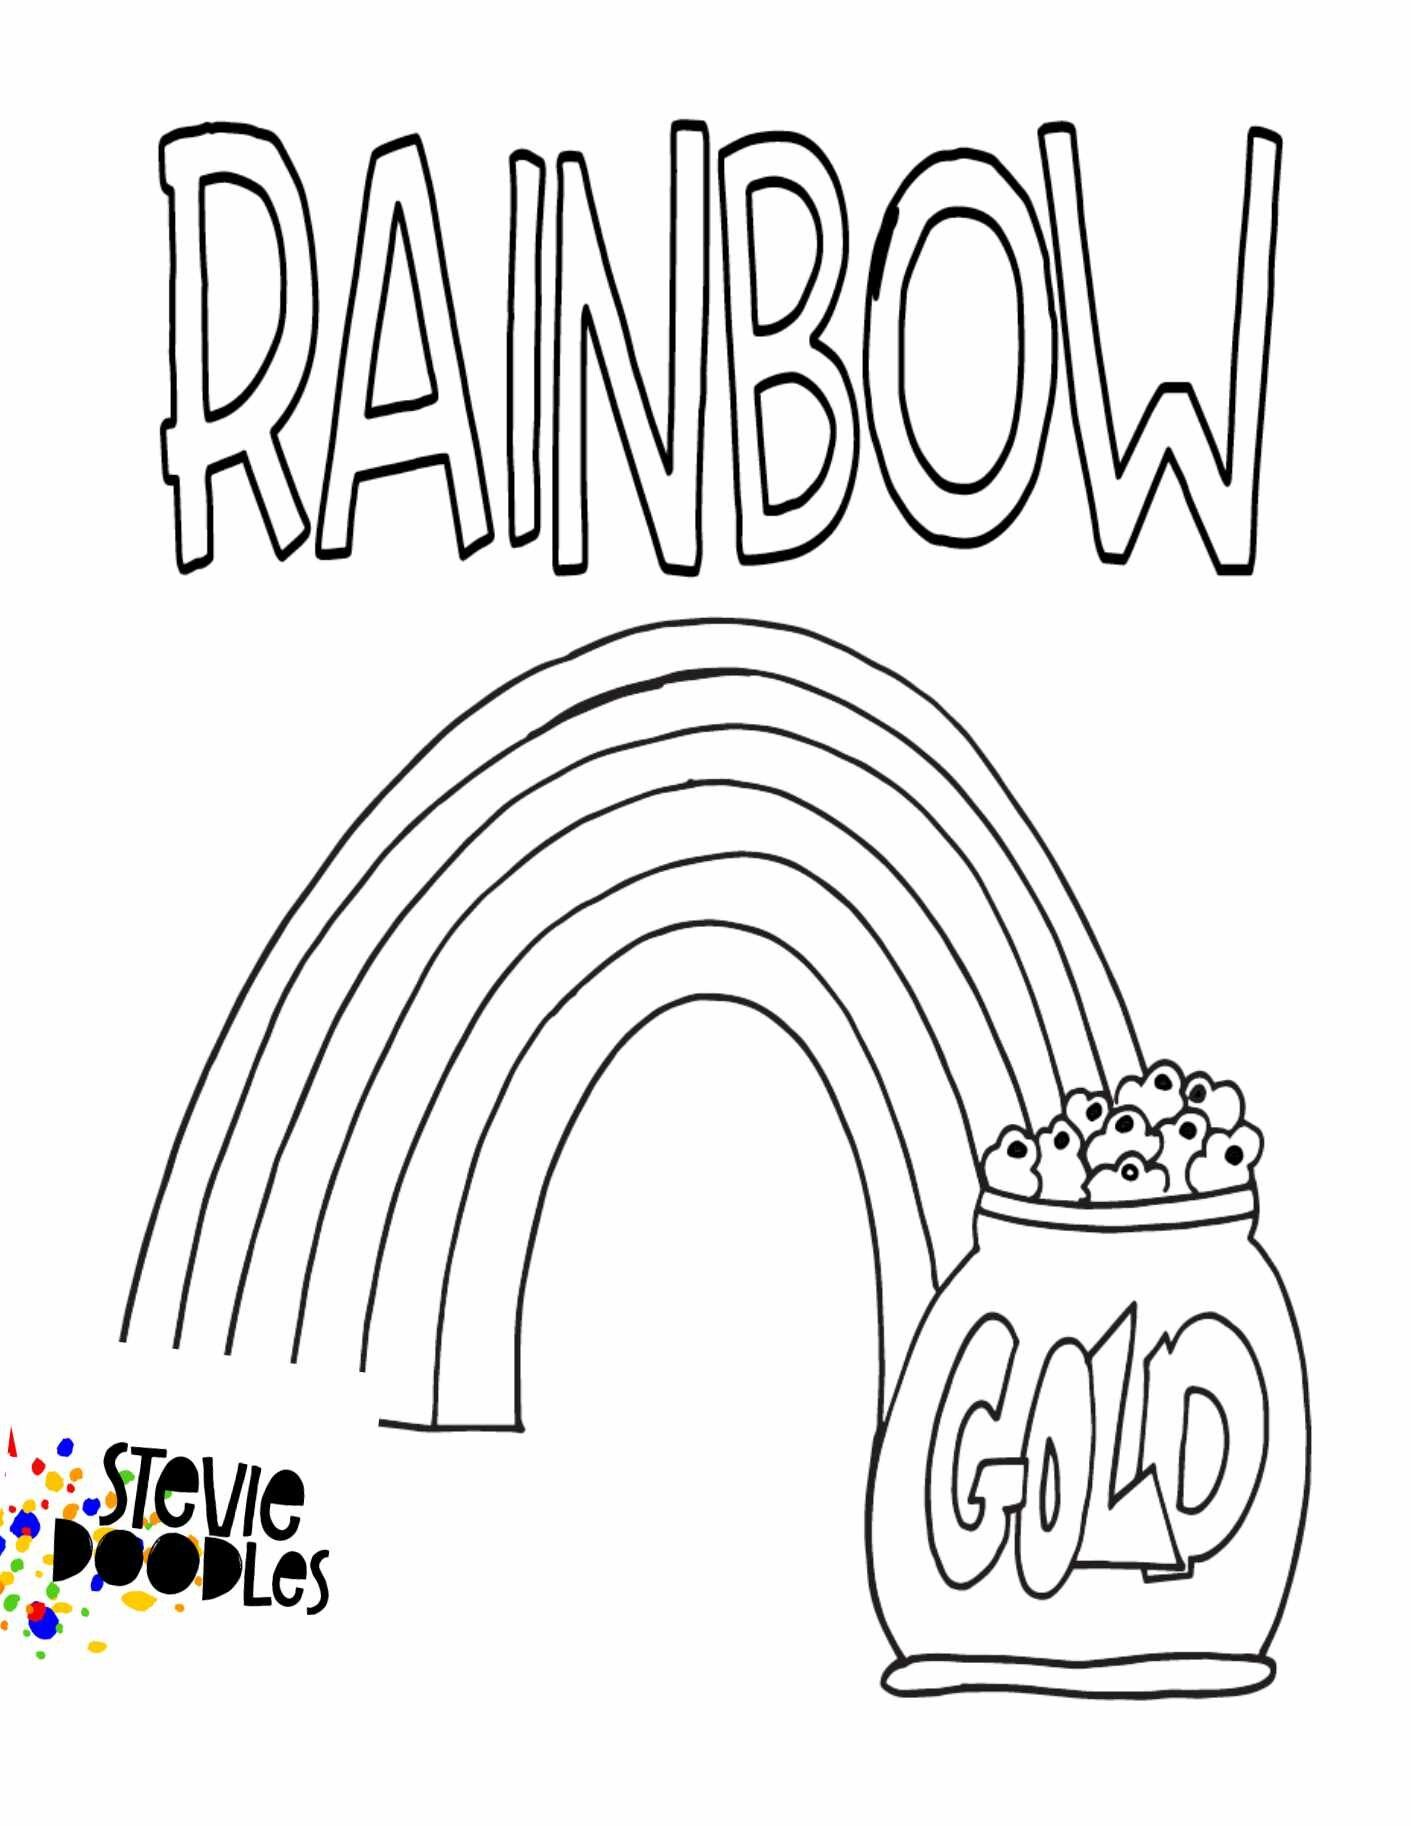 Rainbow With Gold Free Printable Coloring Page Stevie Doodles Free Printable Coloring Pages Free Kids Coloring Pages Kindergarten Coloring Pages [ 1826 x 1411 Pixel ]